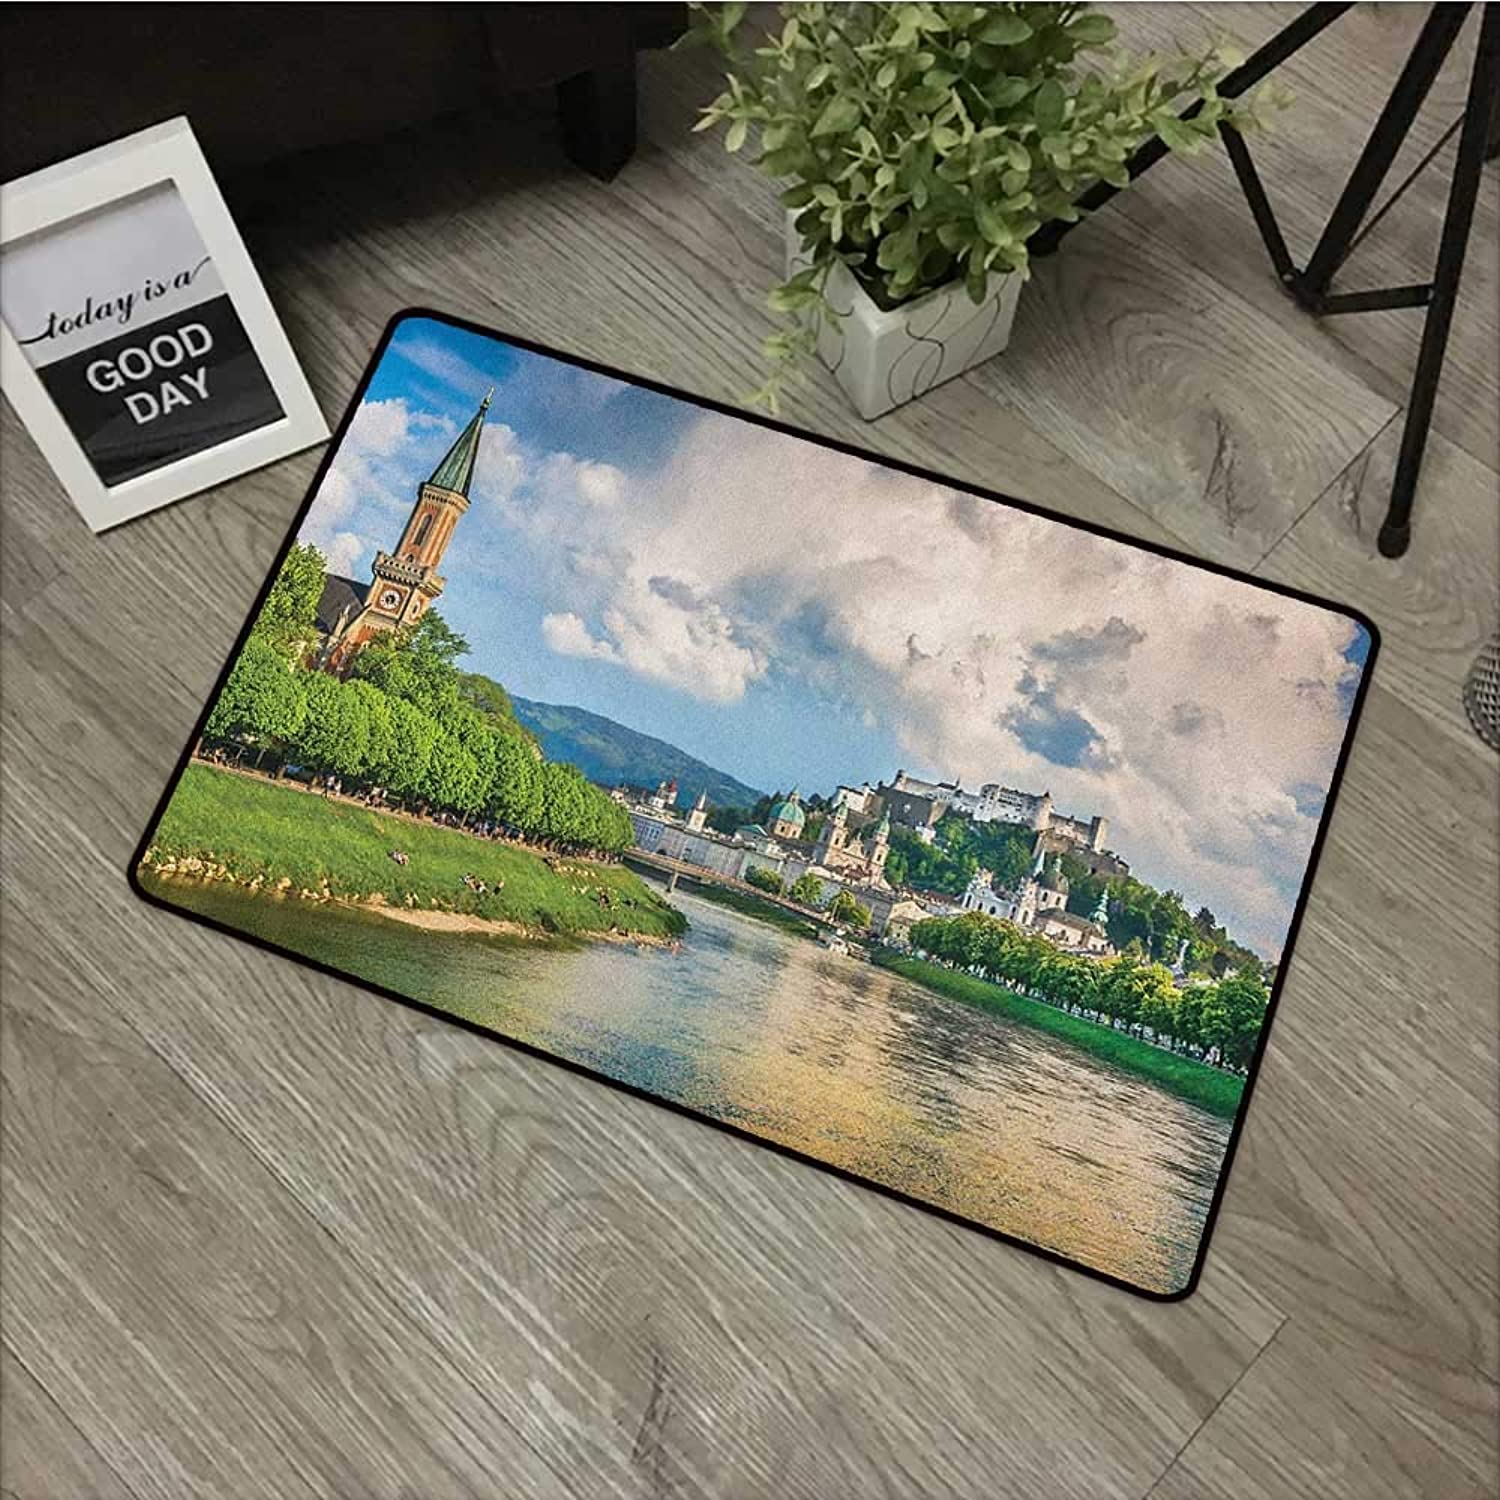 Square Door mat W35 x L59 INCH European,Historic Print European of Salzburg Land with Cloudy Sky and River in Austria, Multicolor with Non-Slip Backing Door Mat Carpet